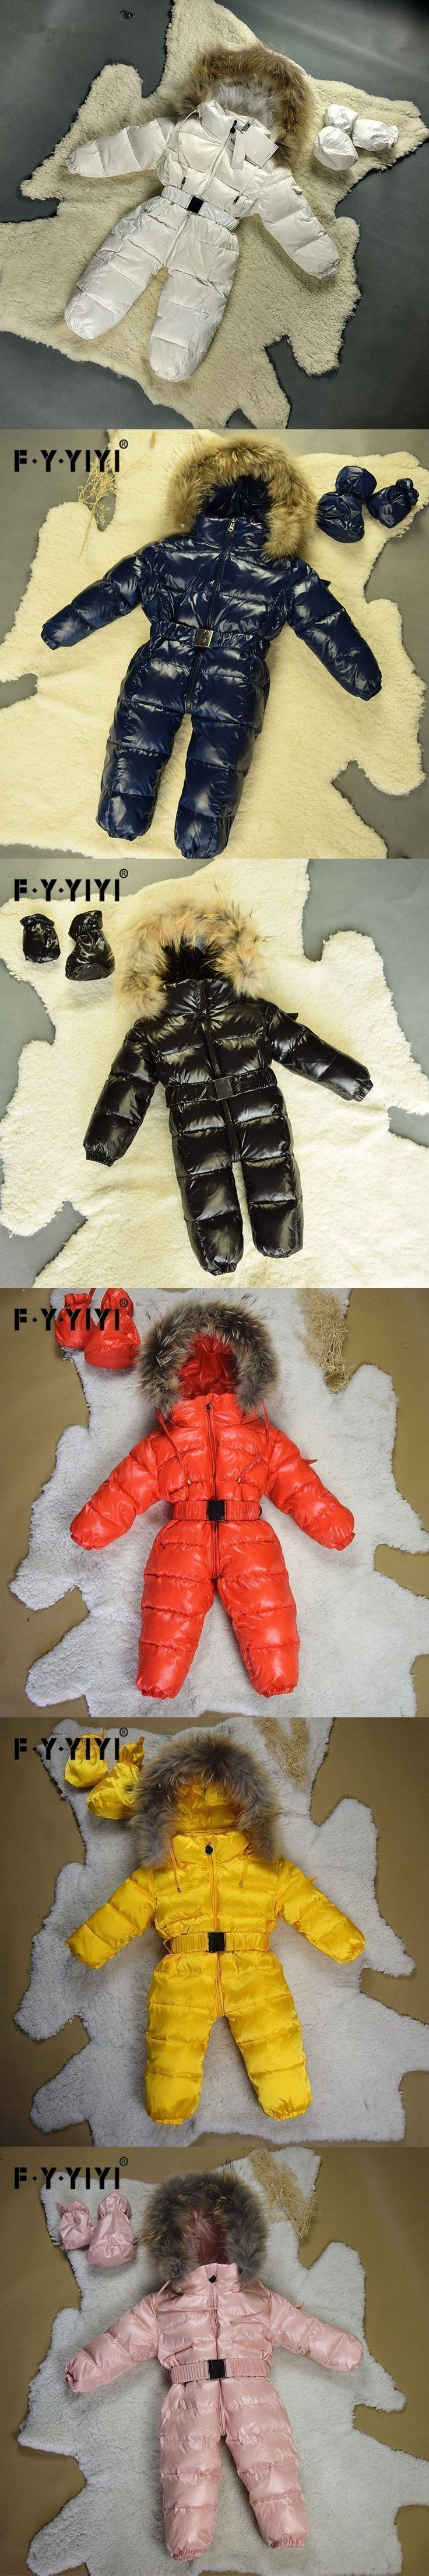 Baby Snowsuit 2017 winter Baby Boys Rompers Warm Overalls For Baby Girls Newborn Clothes Parka Thicken Down Baby Romper #babygirlsnowsuit #newbornboysnowsuit #newborngirlsnowsuit #newbornbabygirls #babyboysnowsuit #babysnowsuit